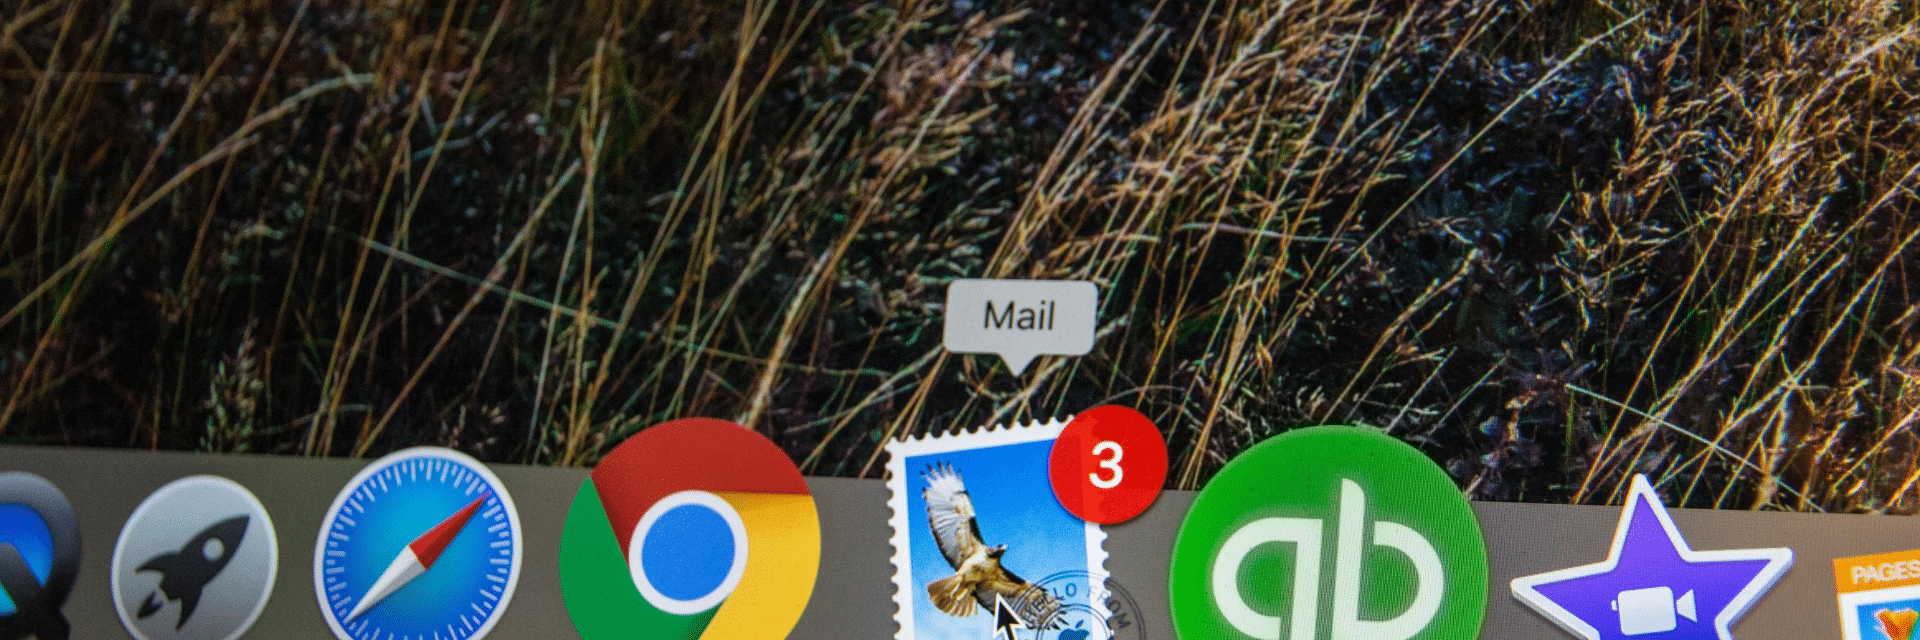 Email icon shows 3 new messages